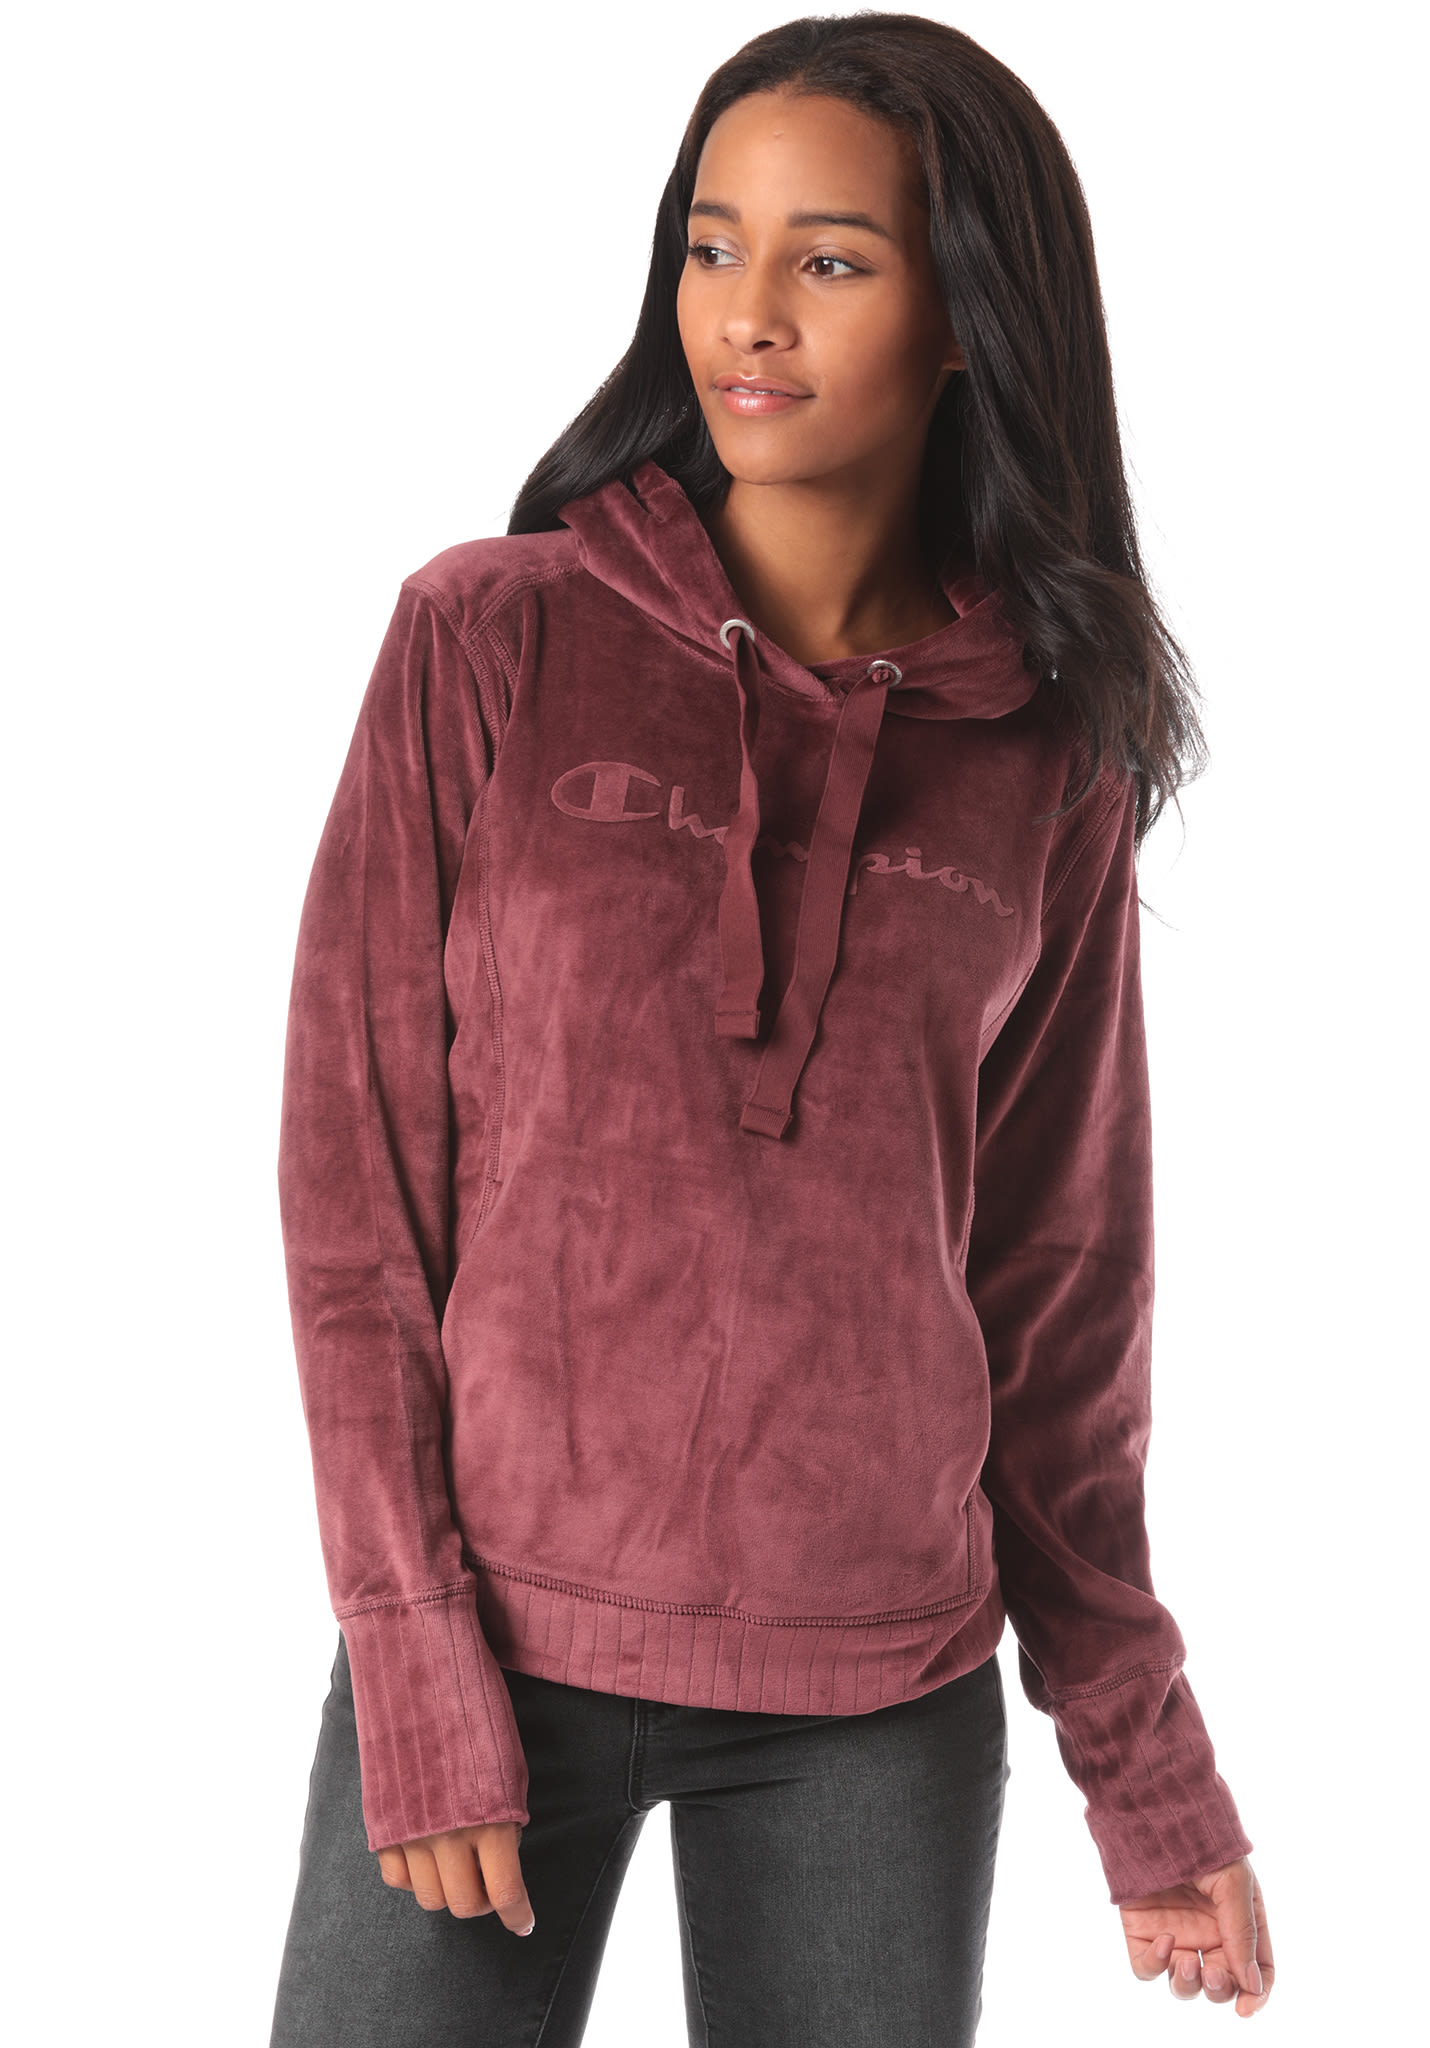 4c2651ac7099 Champion Hooded - Hooded Sweatshirt for Women - Red - Planet Sports